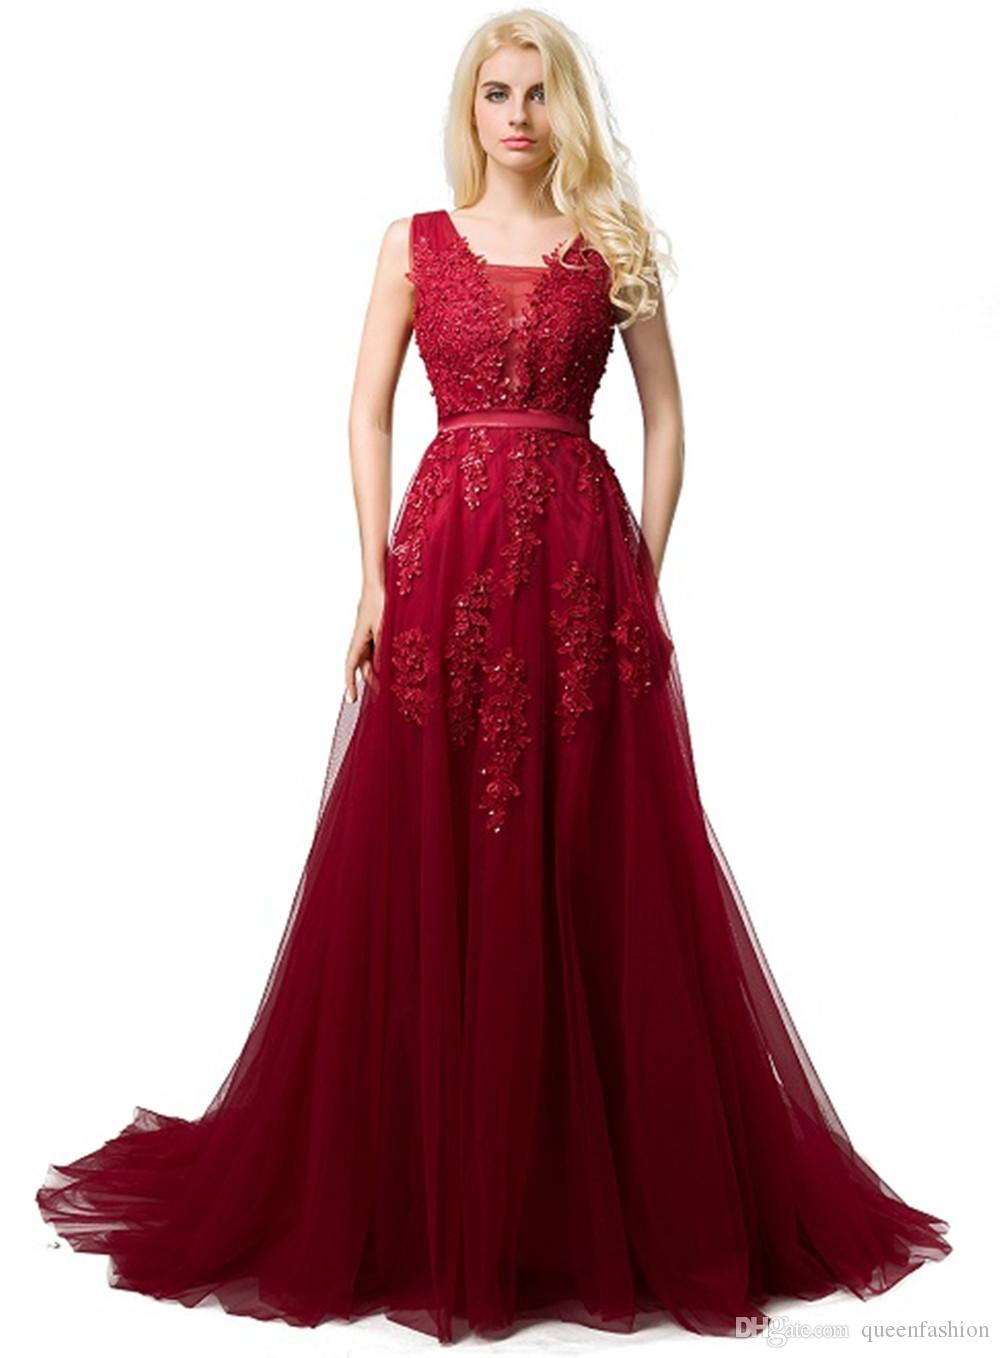 2020 Cheap Long Tulle Evening Prom Dresses Deep V Neck Sleeveless Lace Appliques Low Back Corset Back Formal Party Dress for Women Burgundy